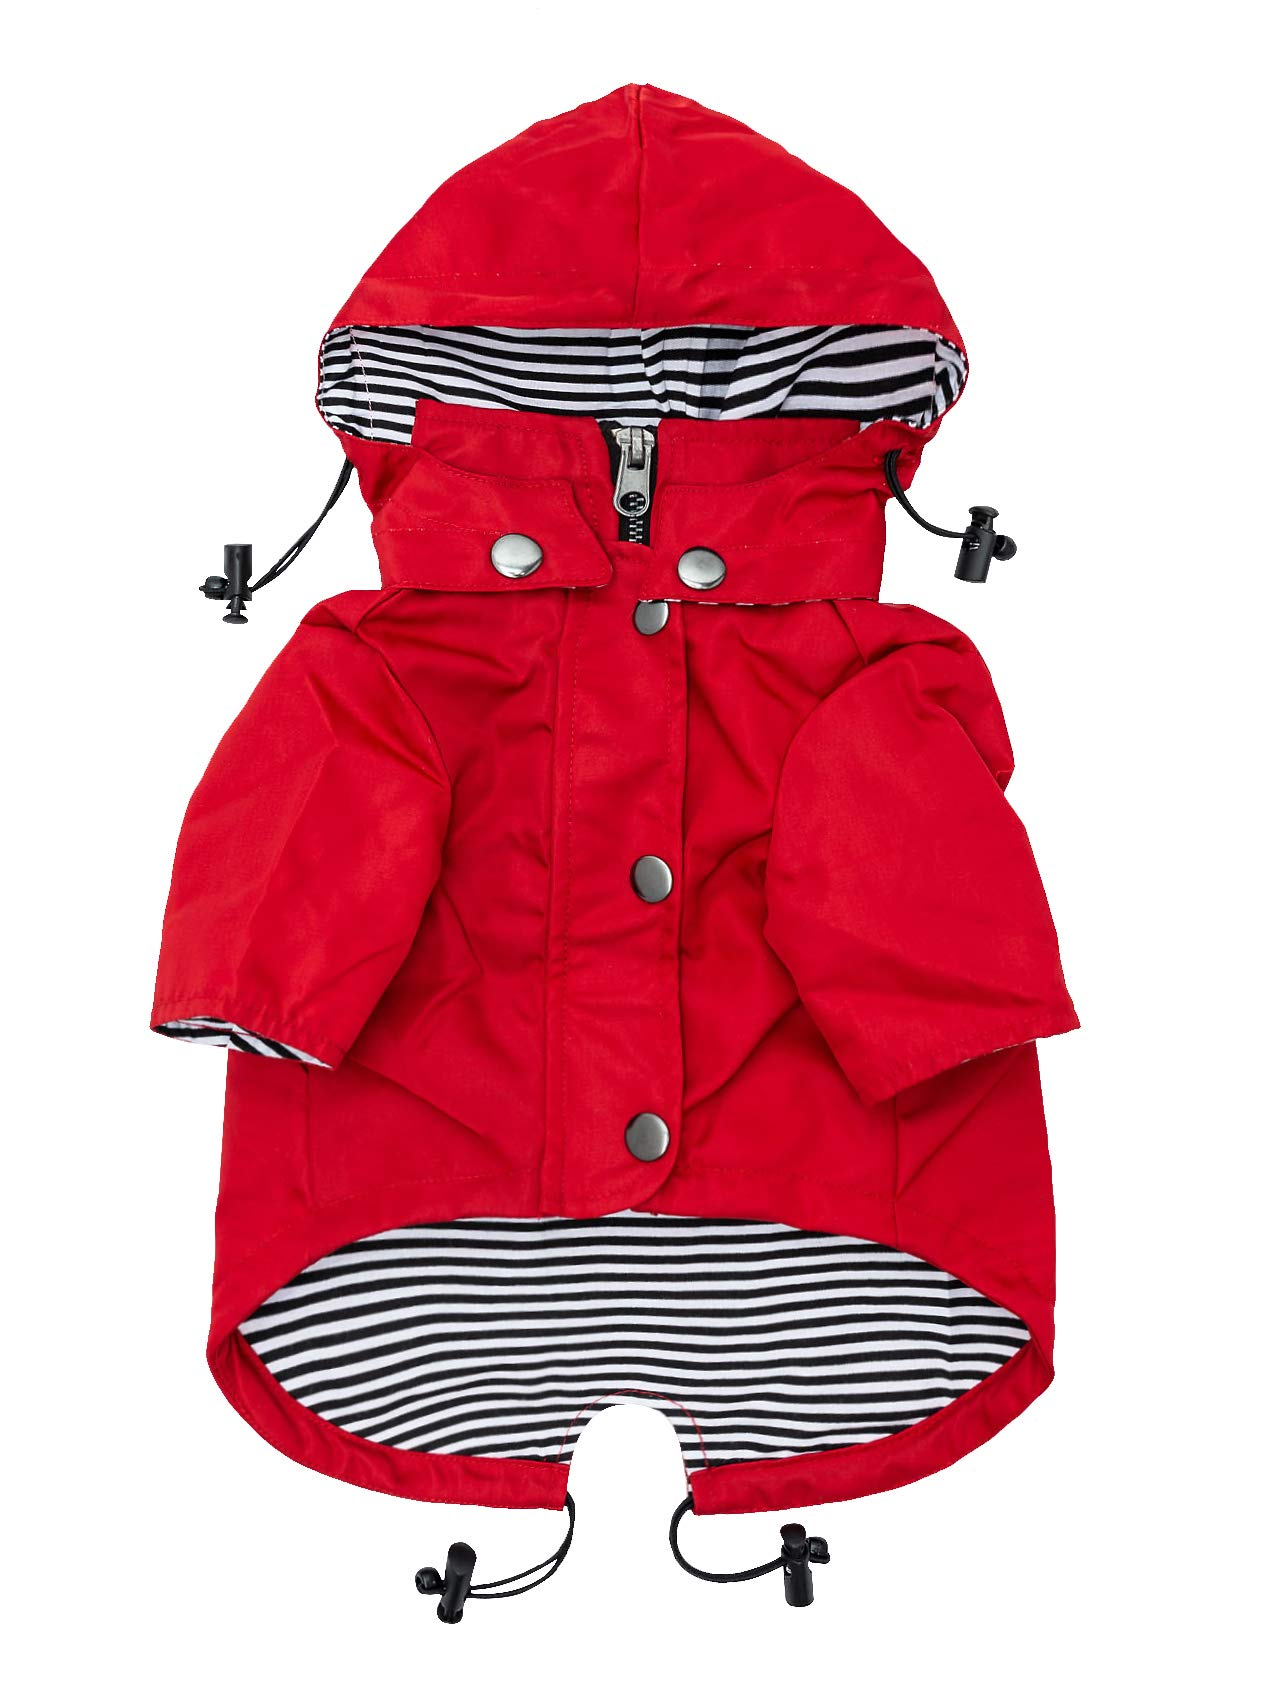 Ellie Dog Wear Red Zip Up Dog Raincoat with Reflective Buttons, Pockets, Rain/Water Resistant, Adjustable Drawstring, Removable Hoodie - Size XS to XXL Available - Stylish Premium Dog Raincoats (M) by Ellie Dog Wear (Image #1)